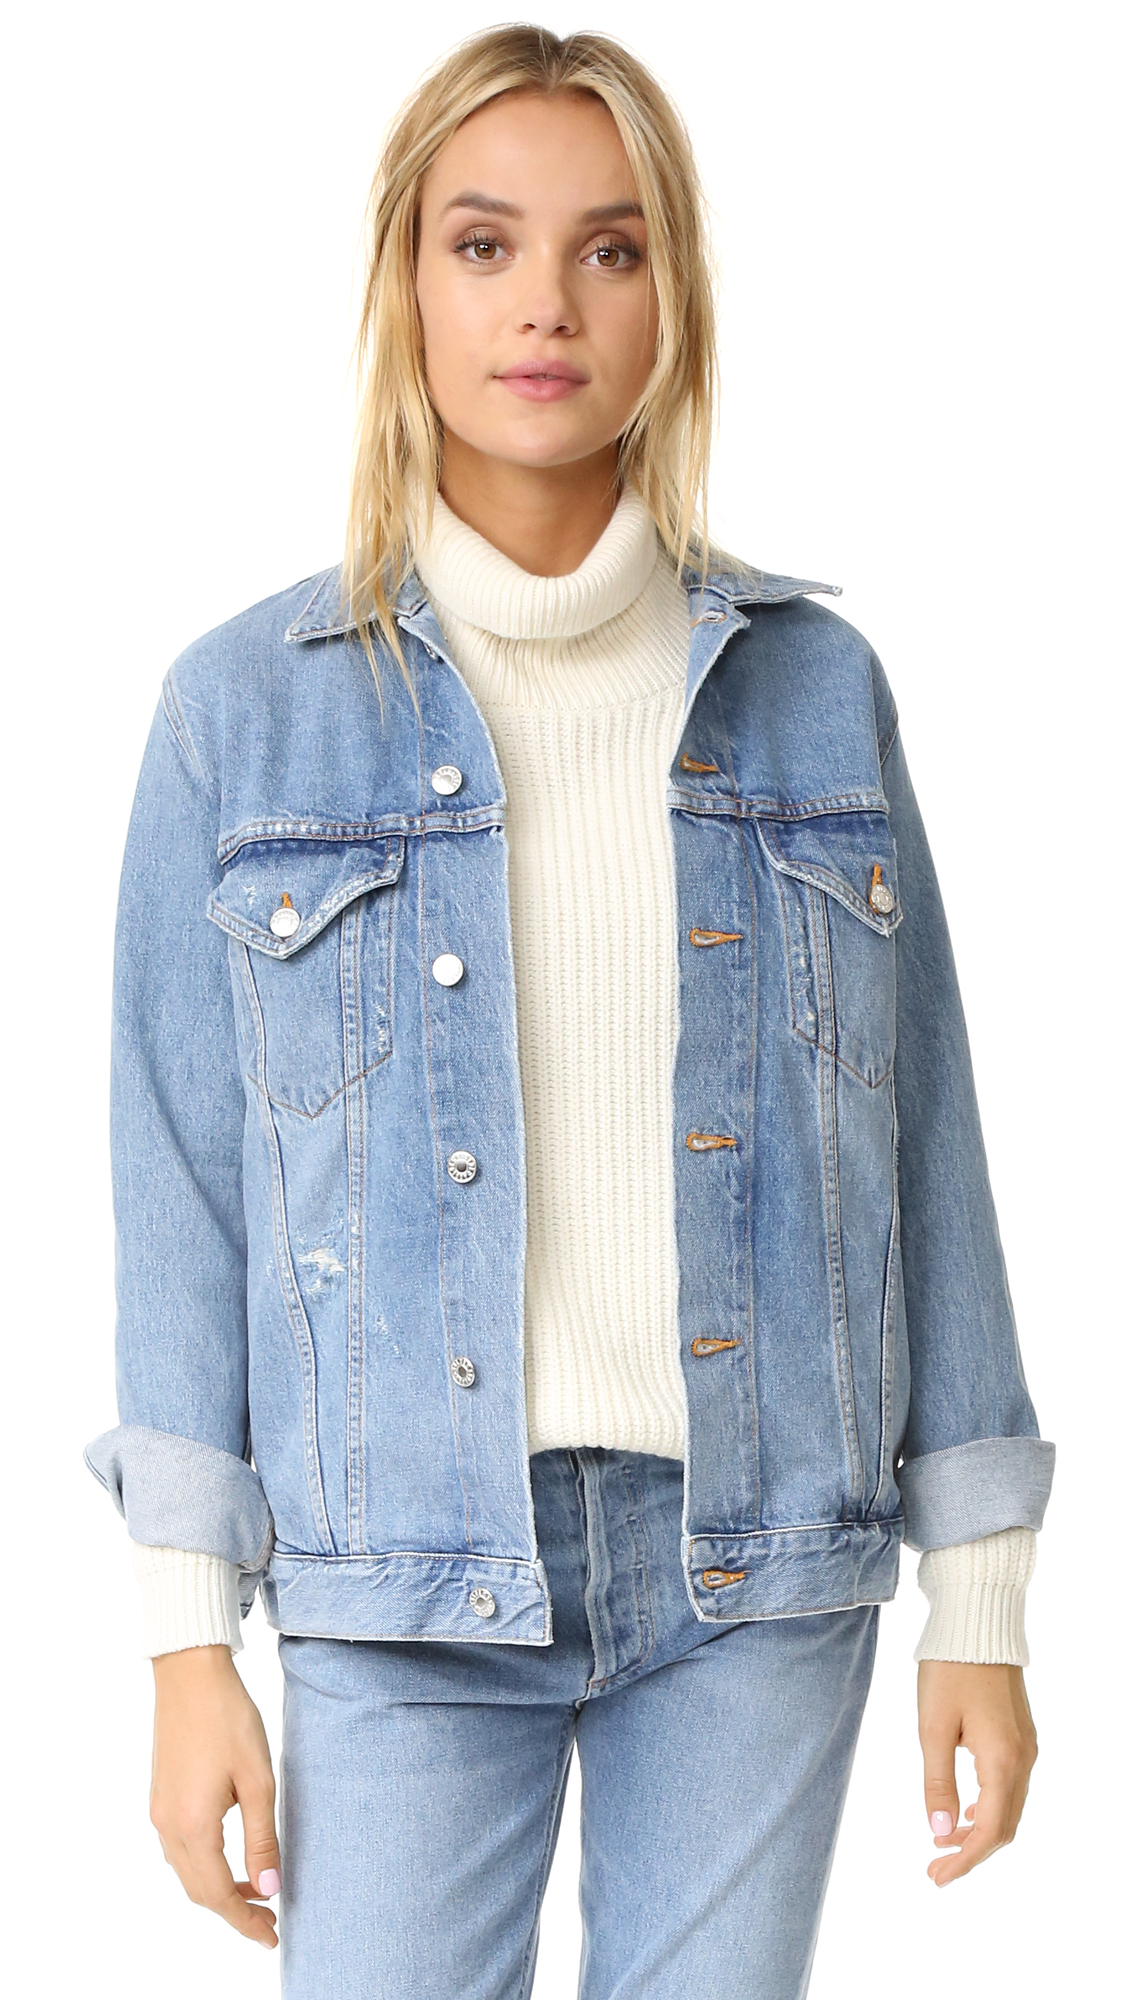 Agolde Jessie Oversized 90S Jacket - Brooklyn at Shopbop